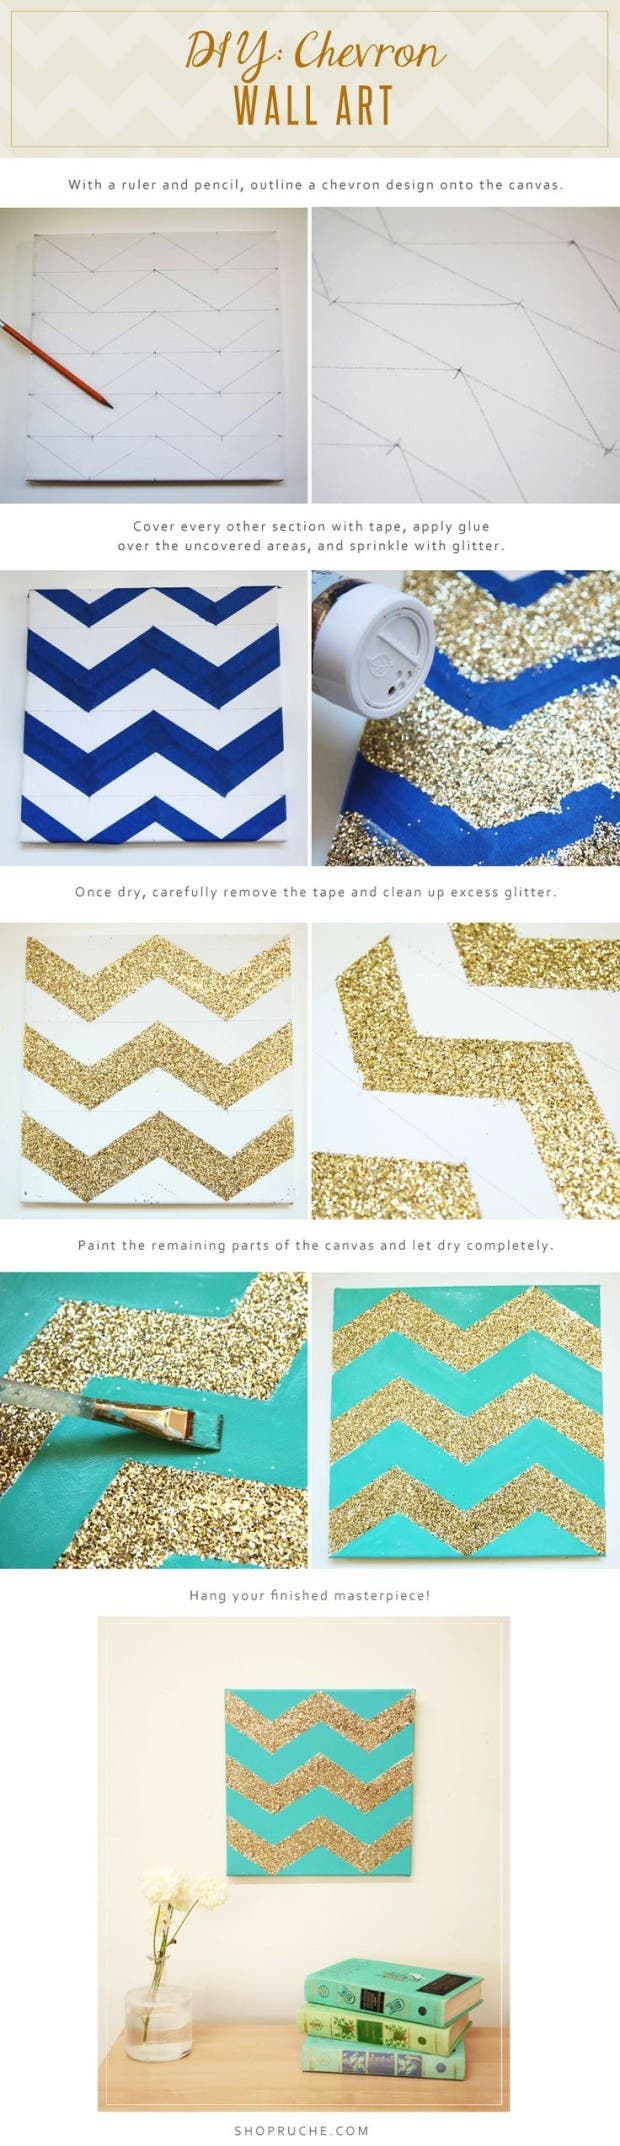 Top-32-Amazing-DIY-Paintings-For-Your-Blank-Walls-4